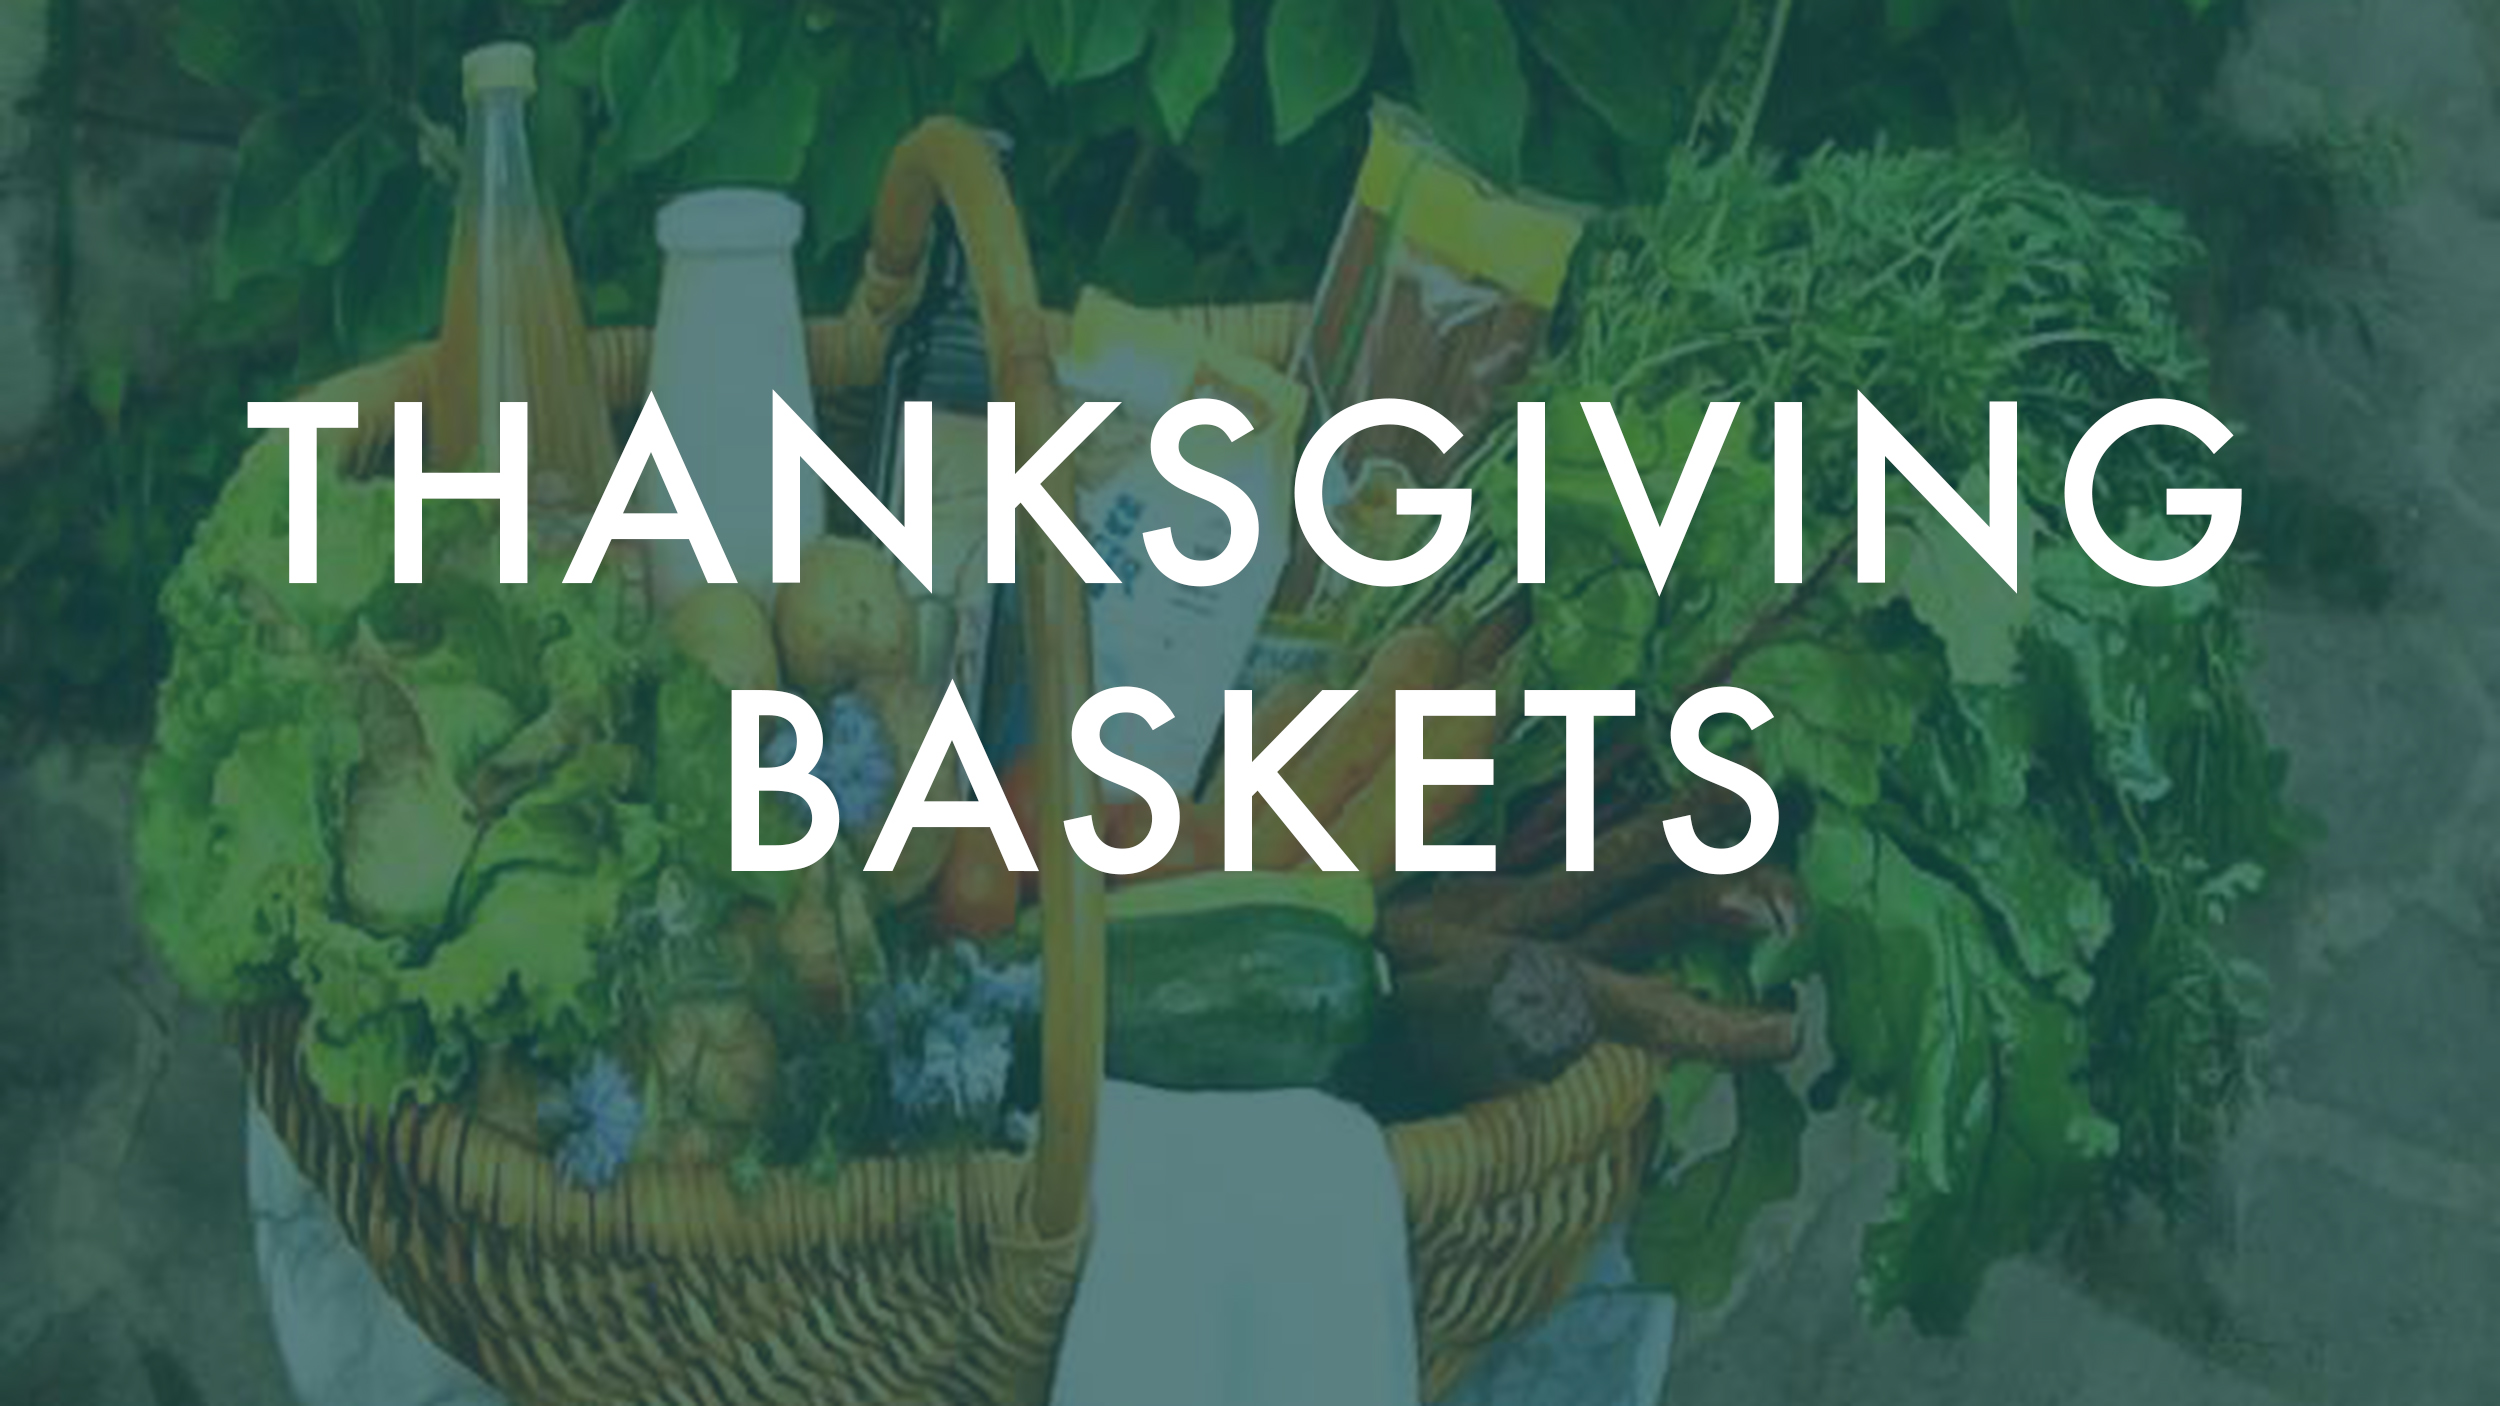 Thanksgiving Baskets.jpg